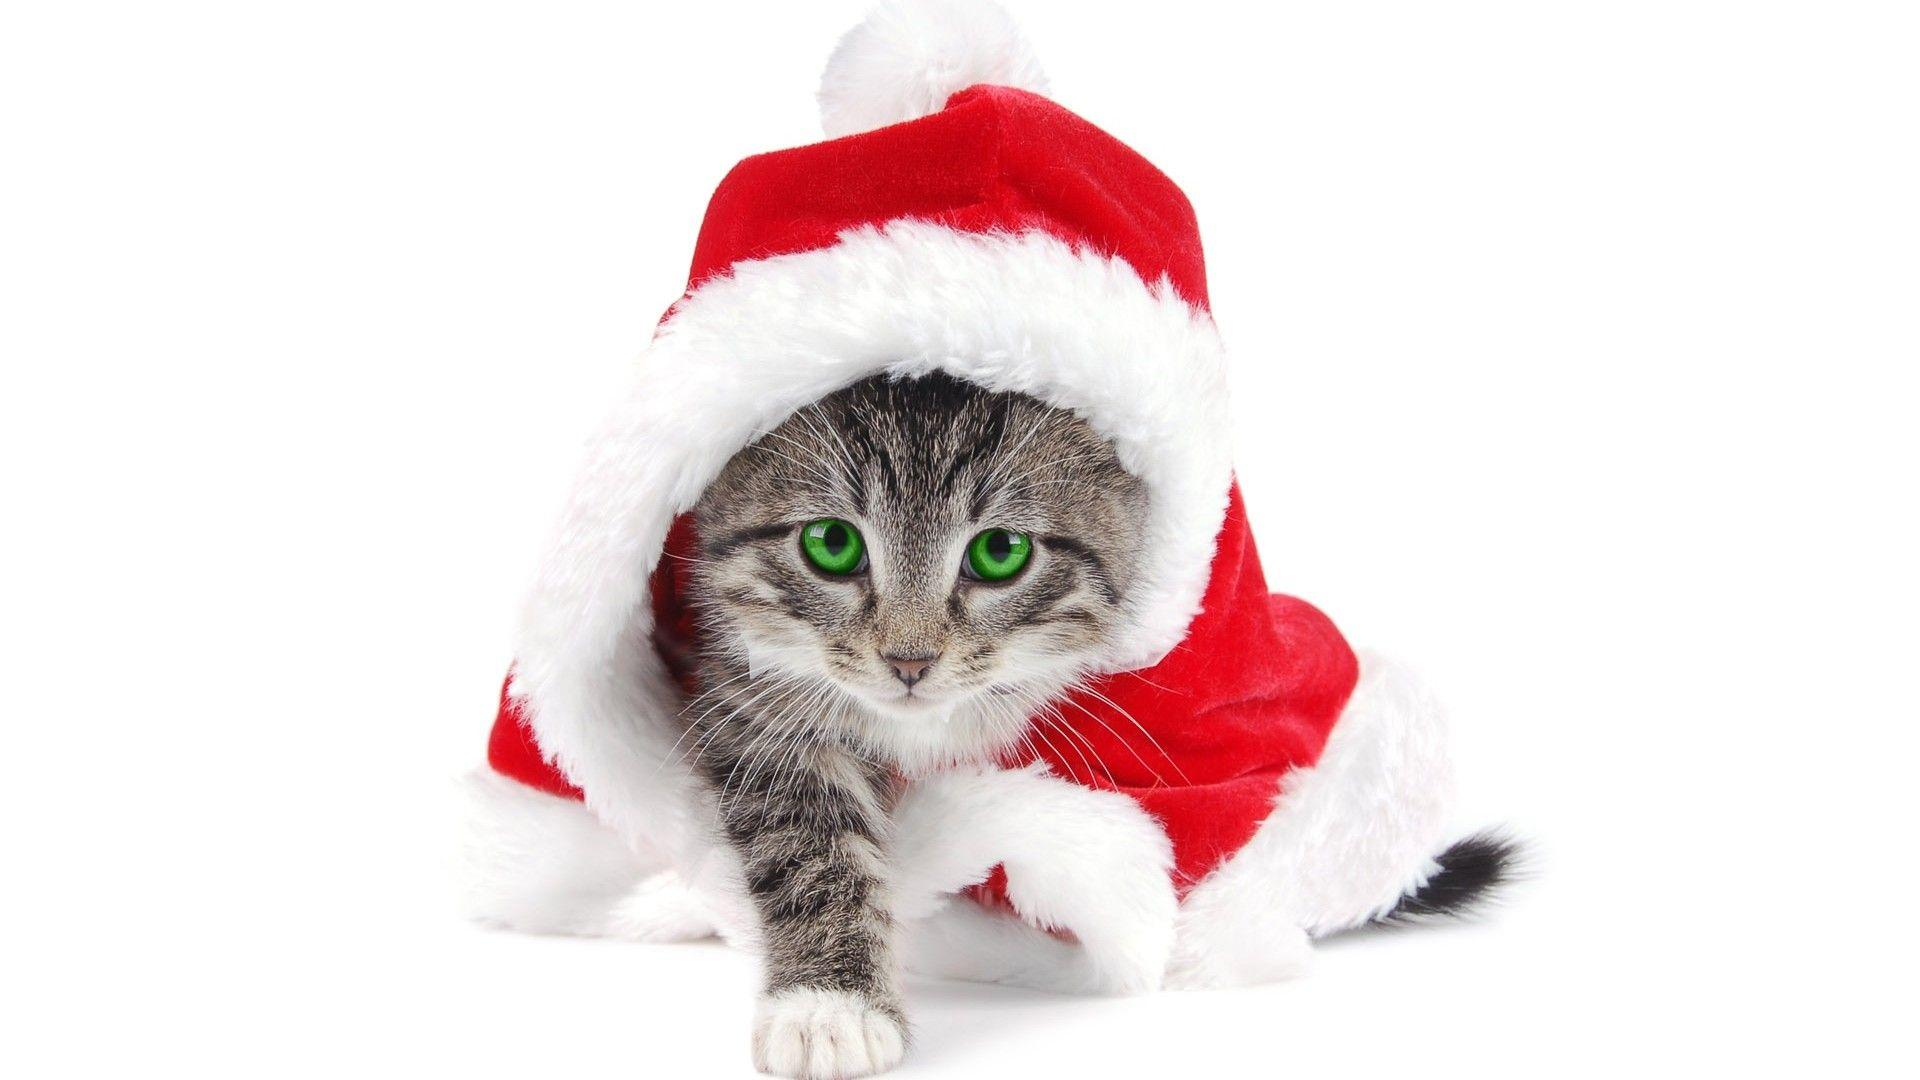 Cute Baby Cat Christmas Wallpaper Free Downloa 11467